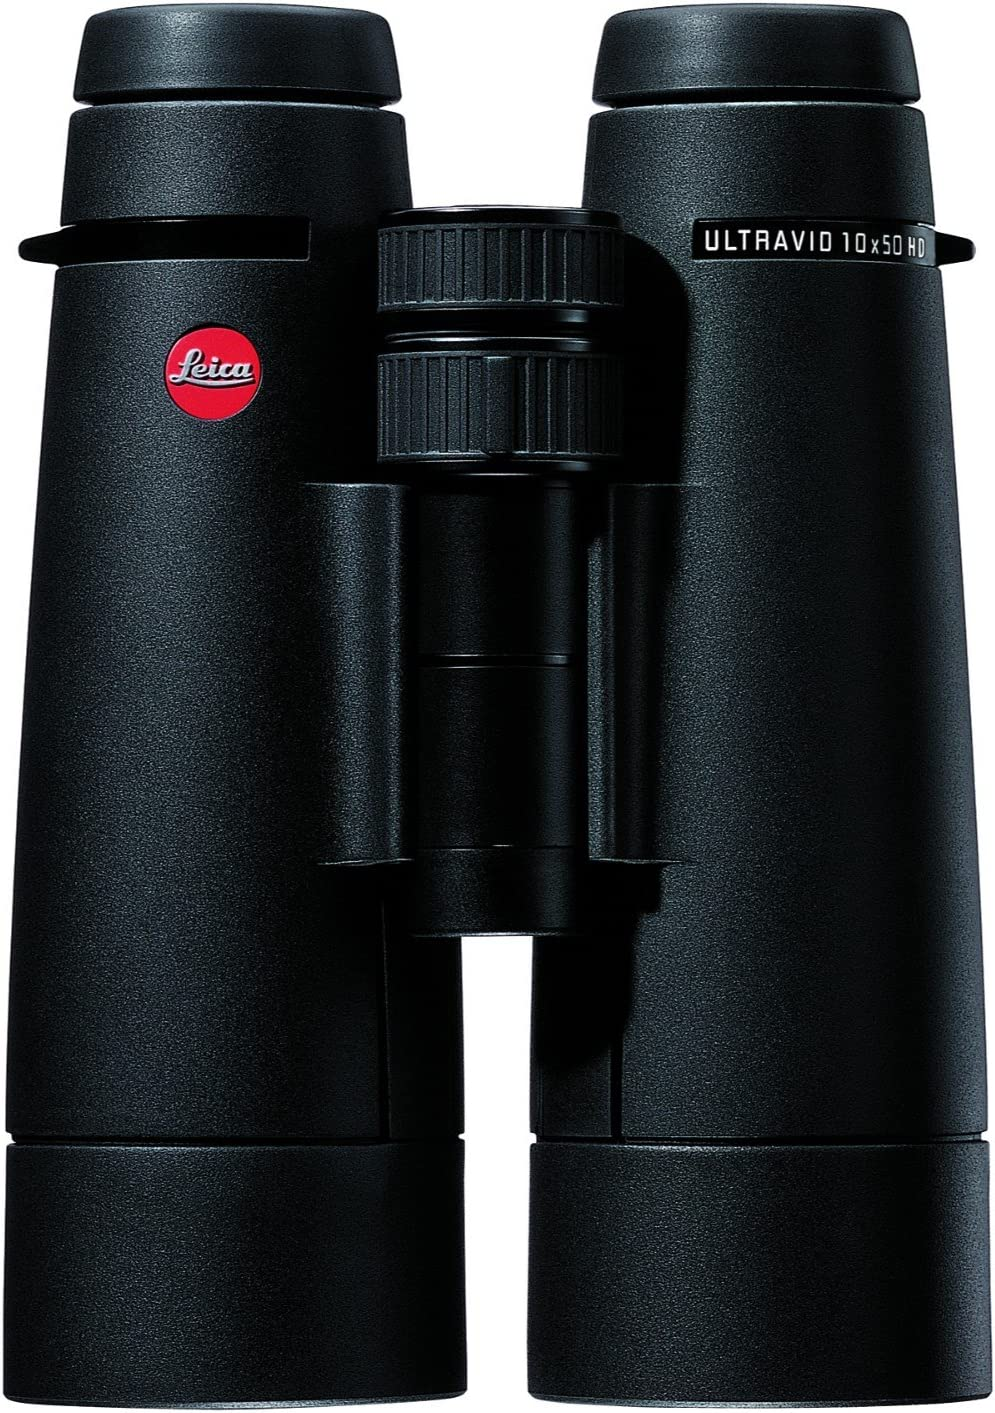 Leica Ultravid 10×50 HD Plus Binoculars With HighLux-System HLS, Black